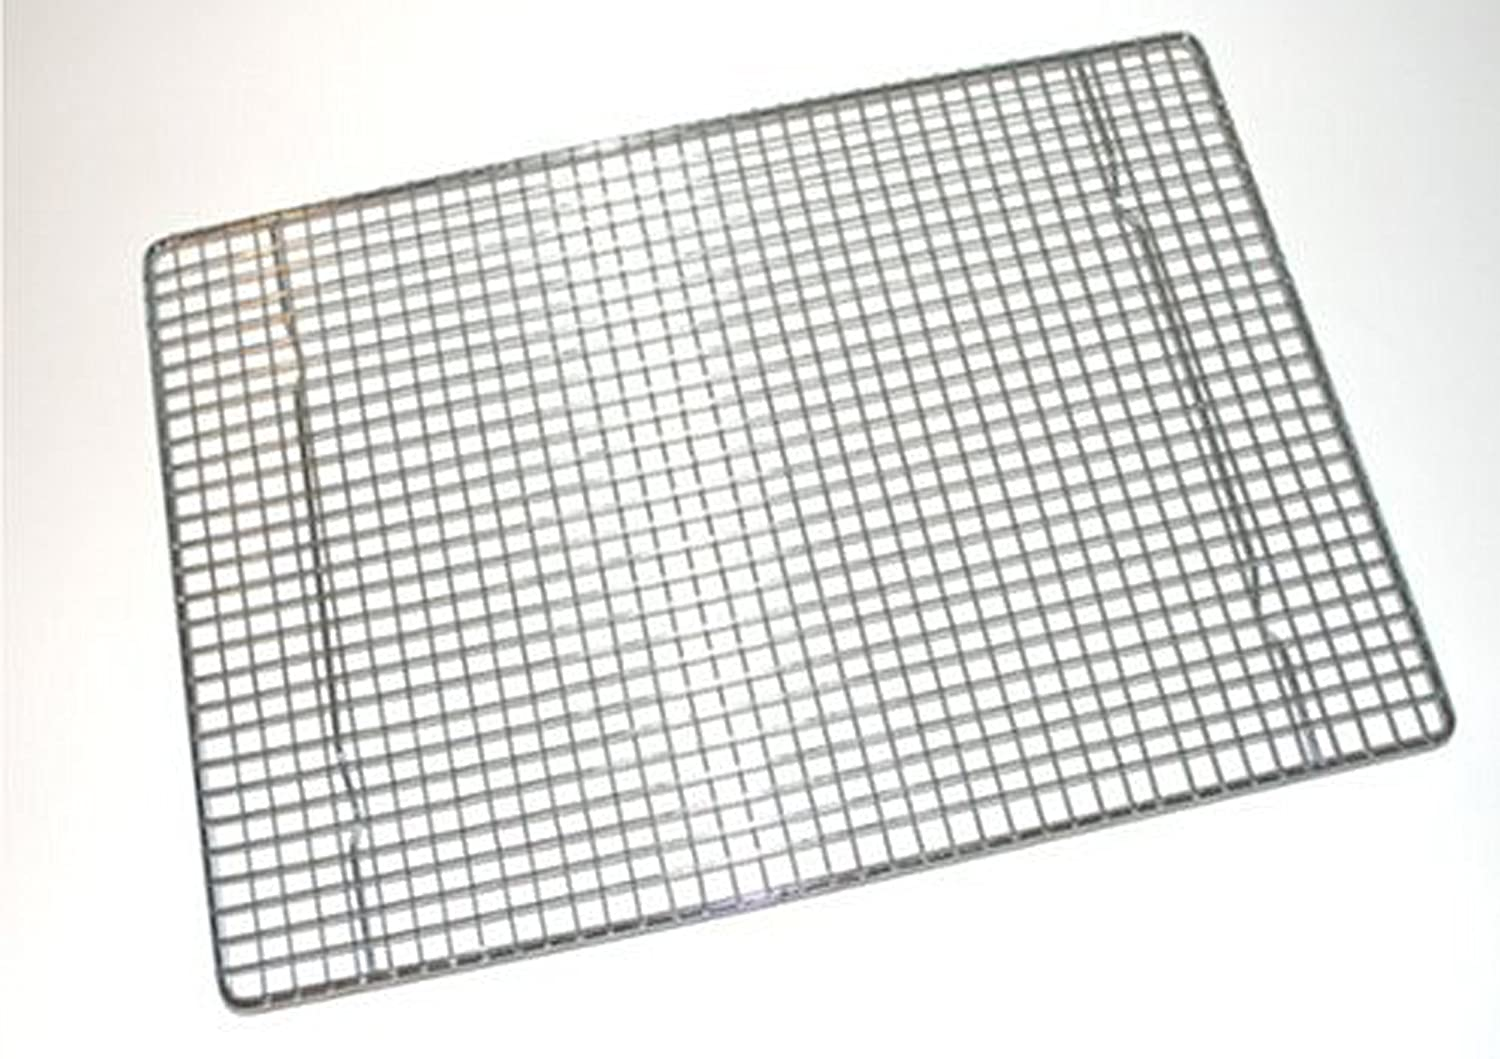 Amazon.com: Professional Cross Wire Cooling Rack Half Sheet Pan ...